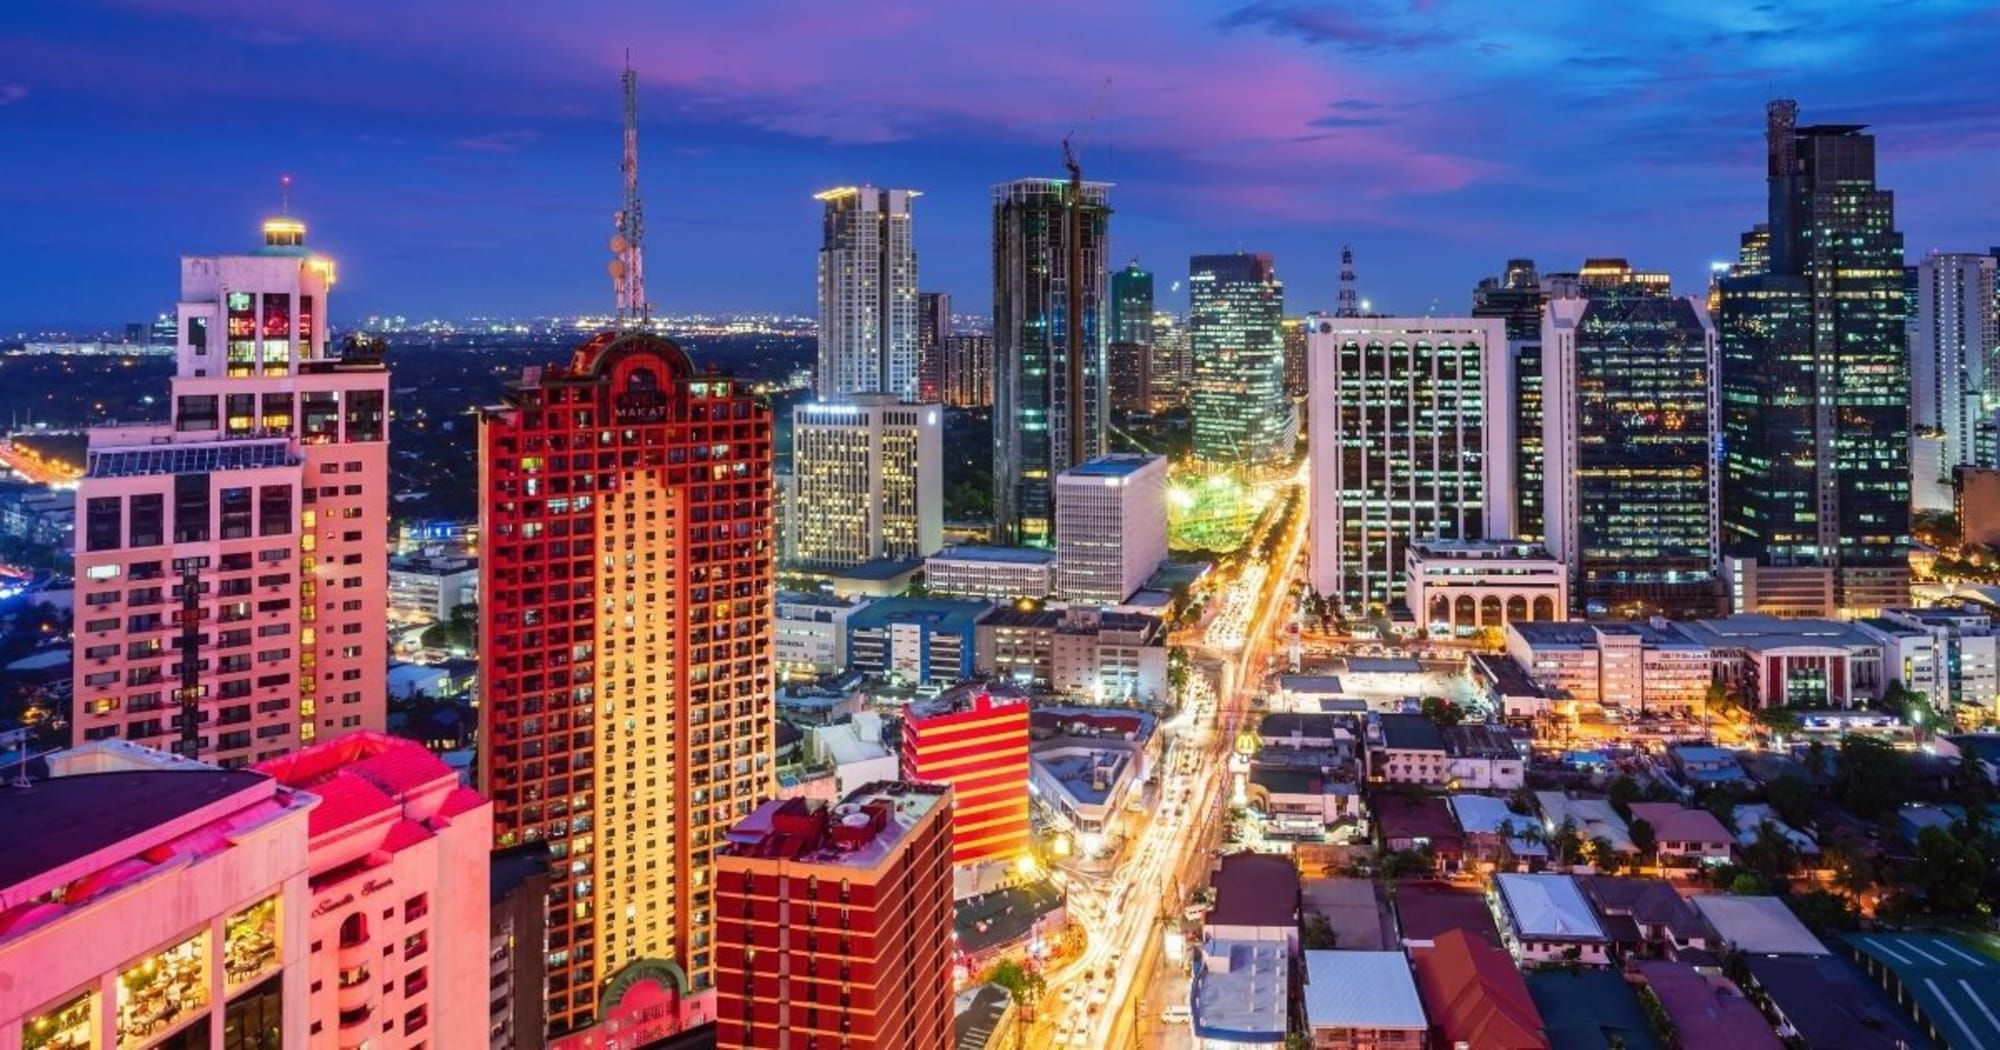 5,986 staycation rooms are open for guests from NCR Plus -DOT